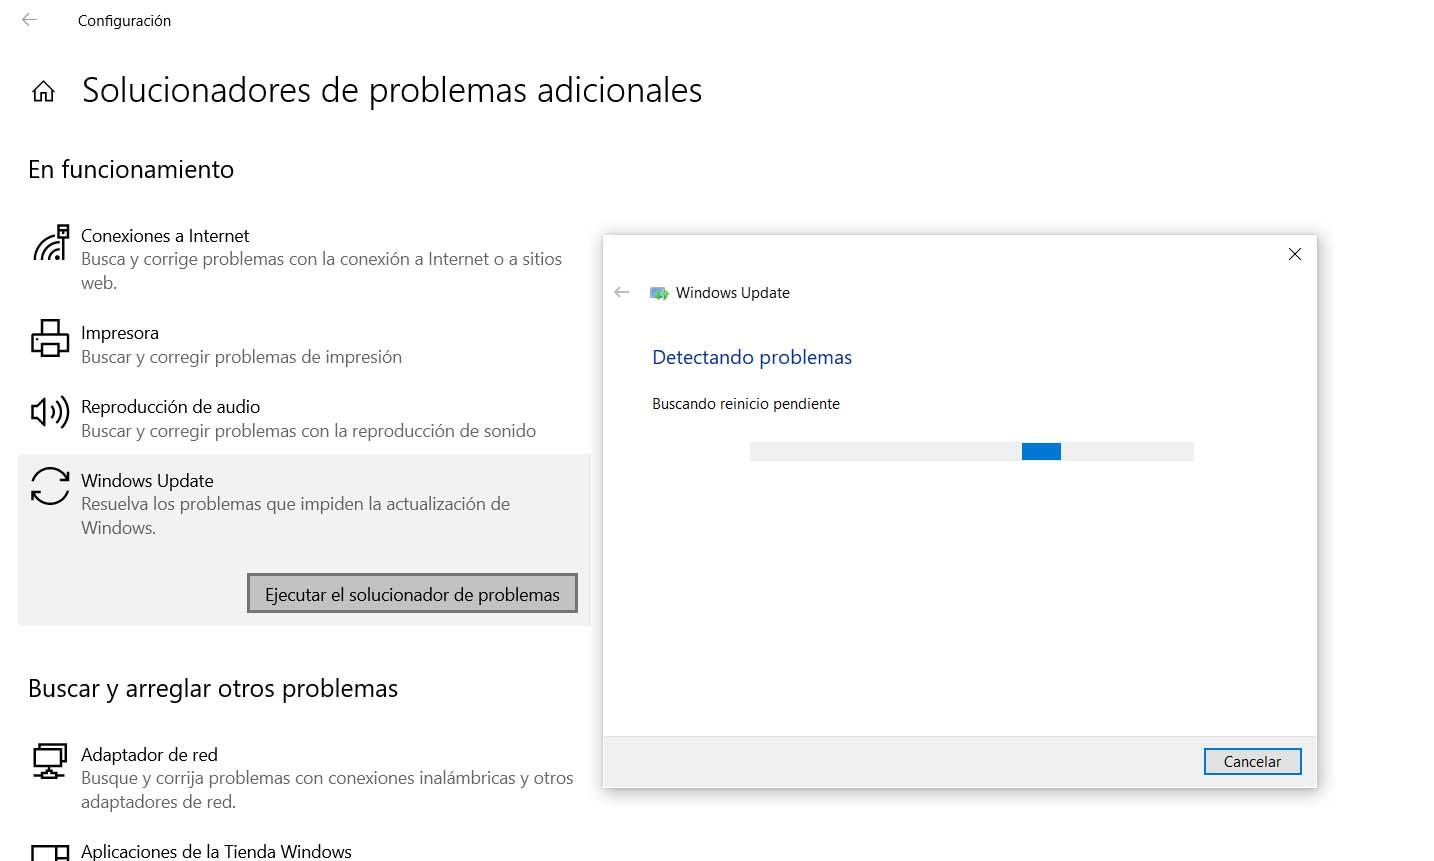 Fix bugs with Windows Update